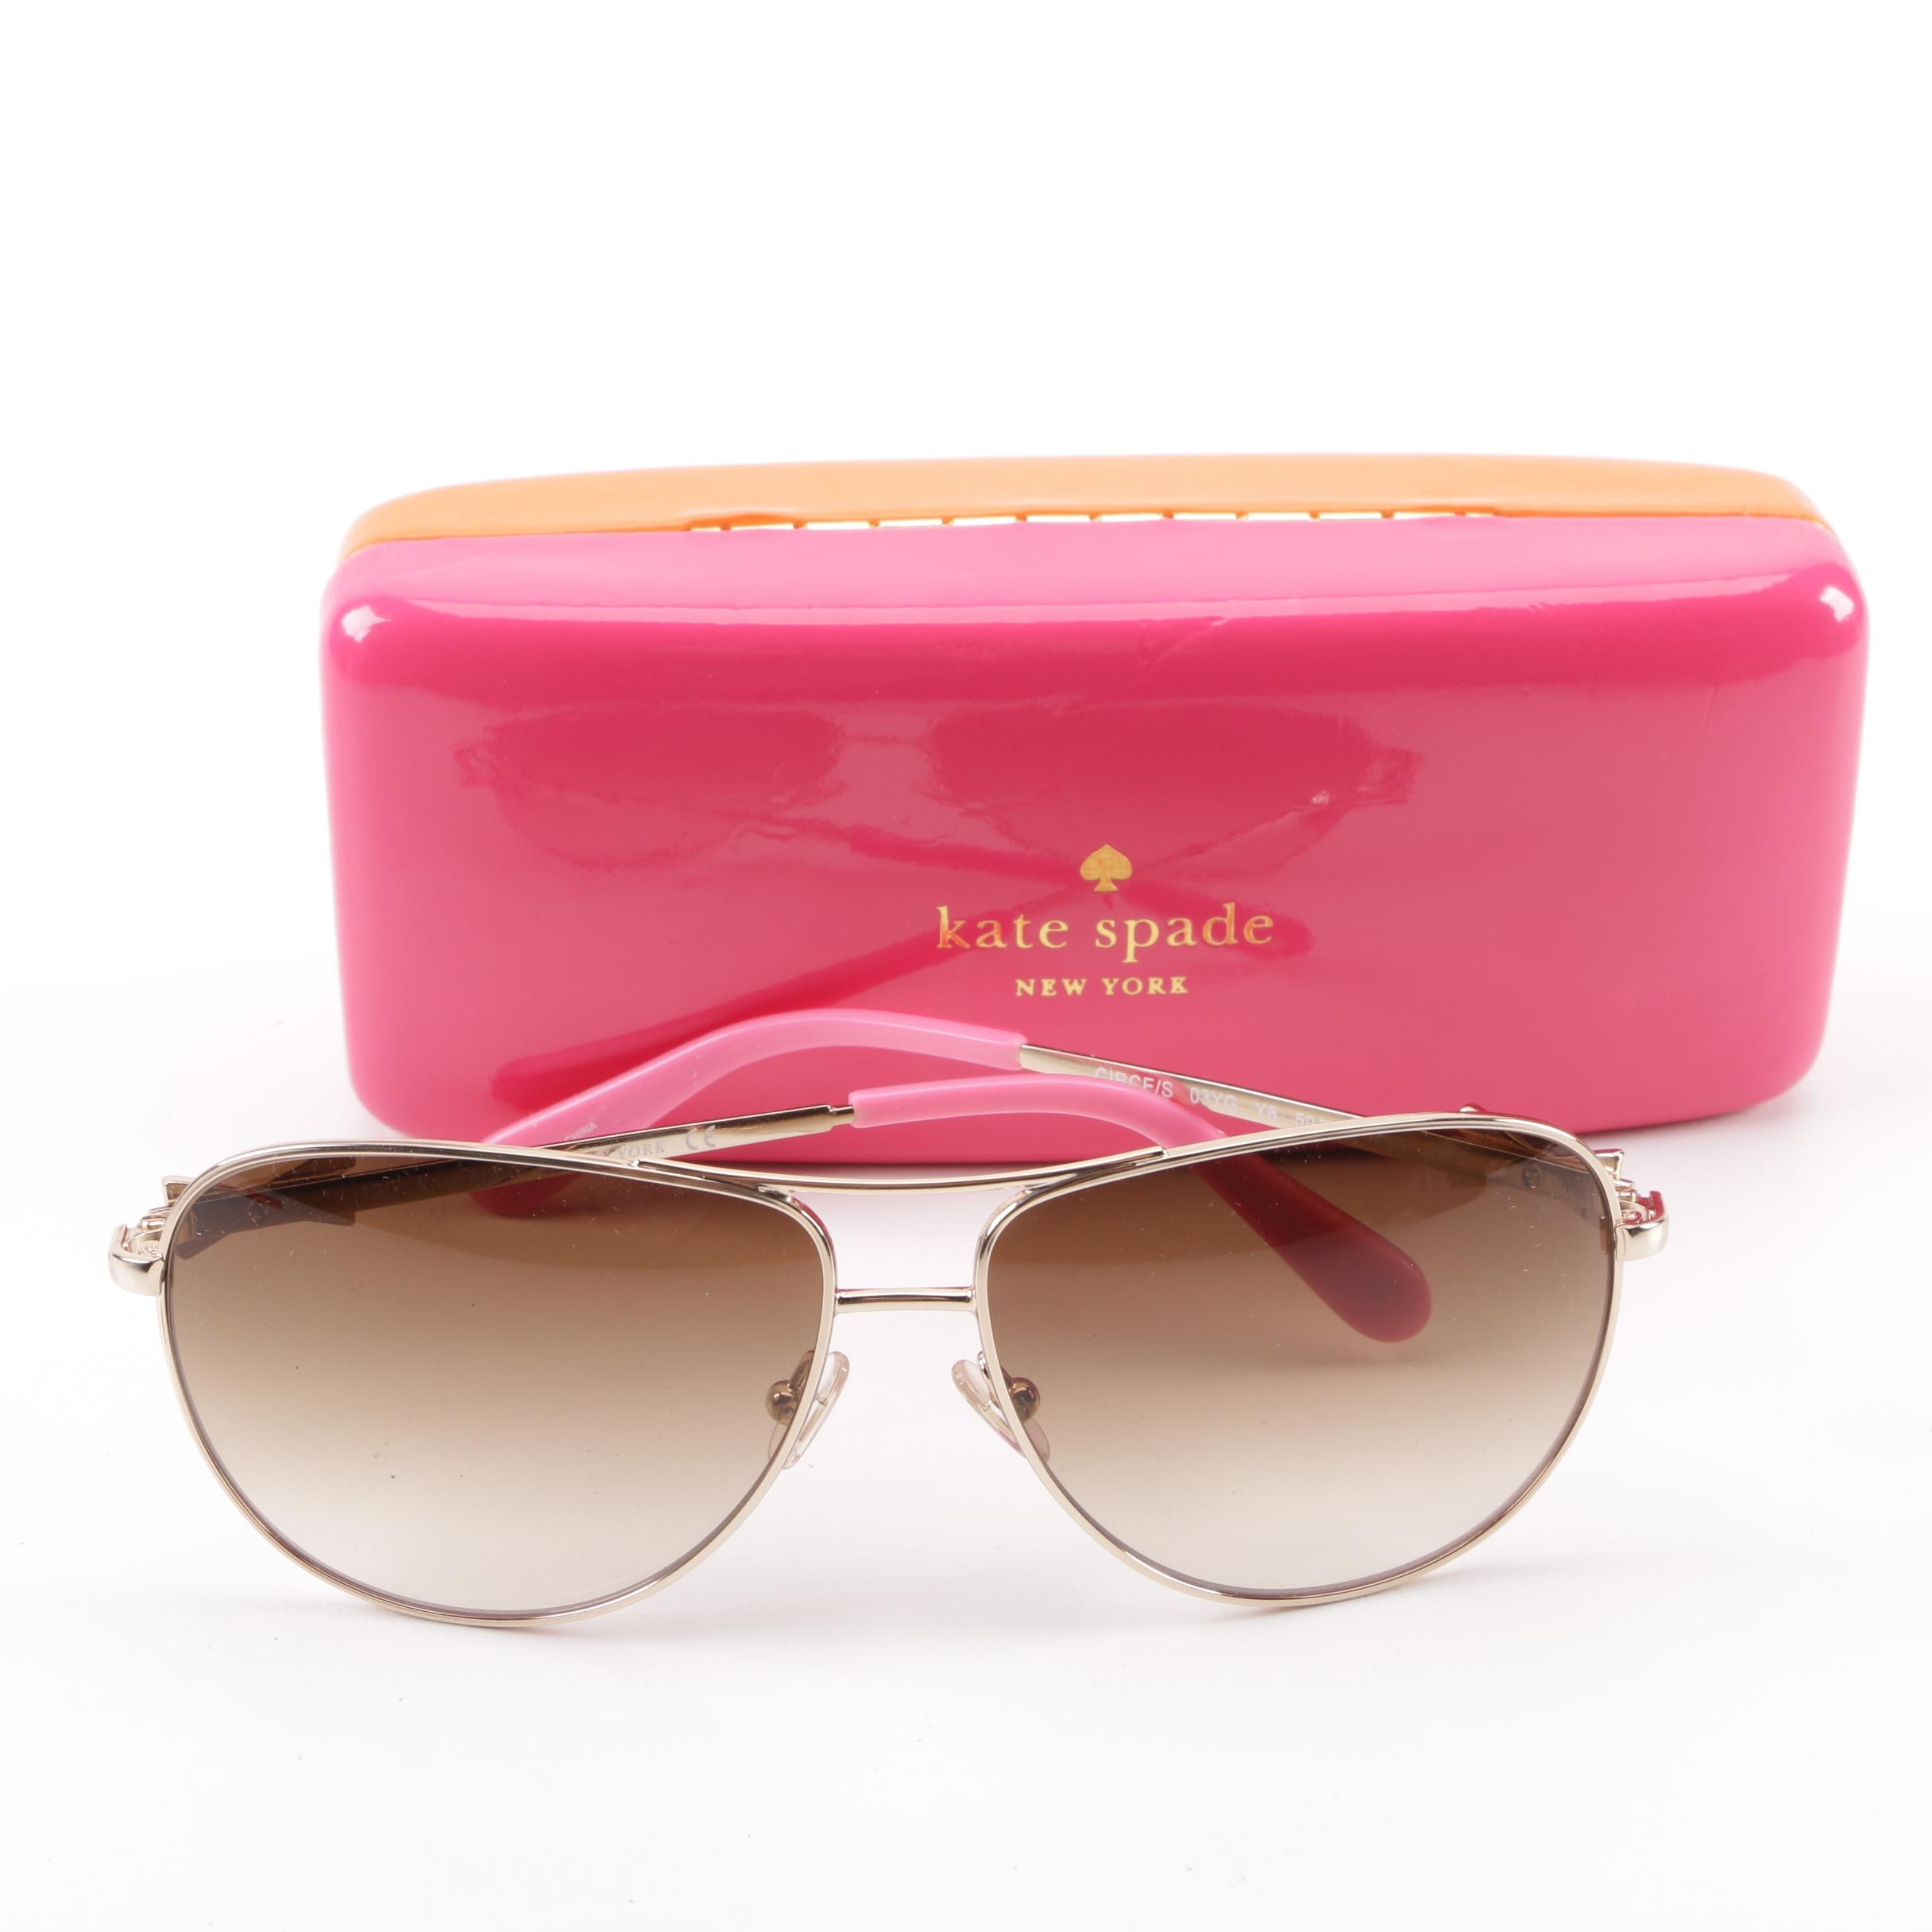 Kate Spade New York Circe Aviator Sunglasses with Case